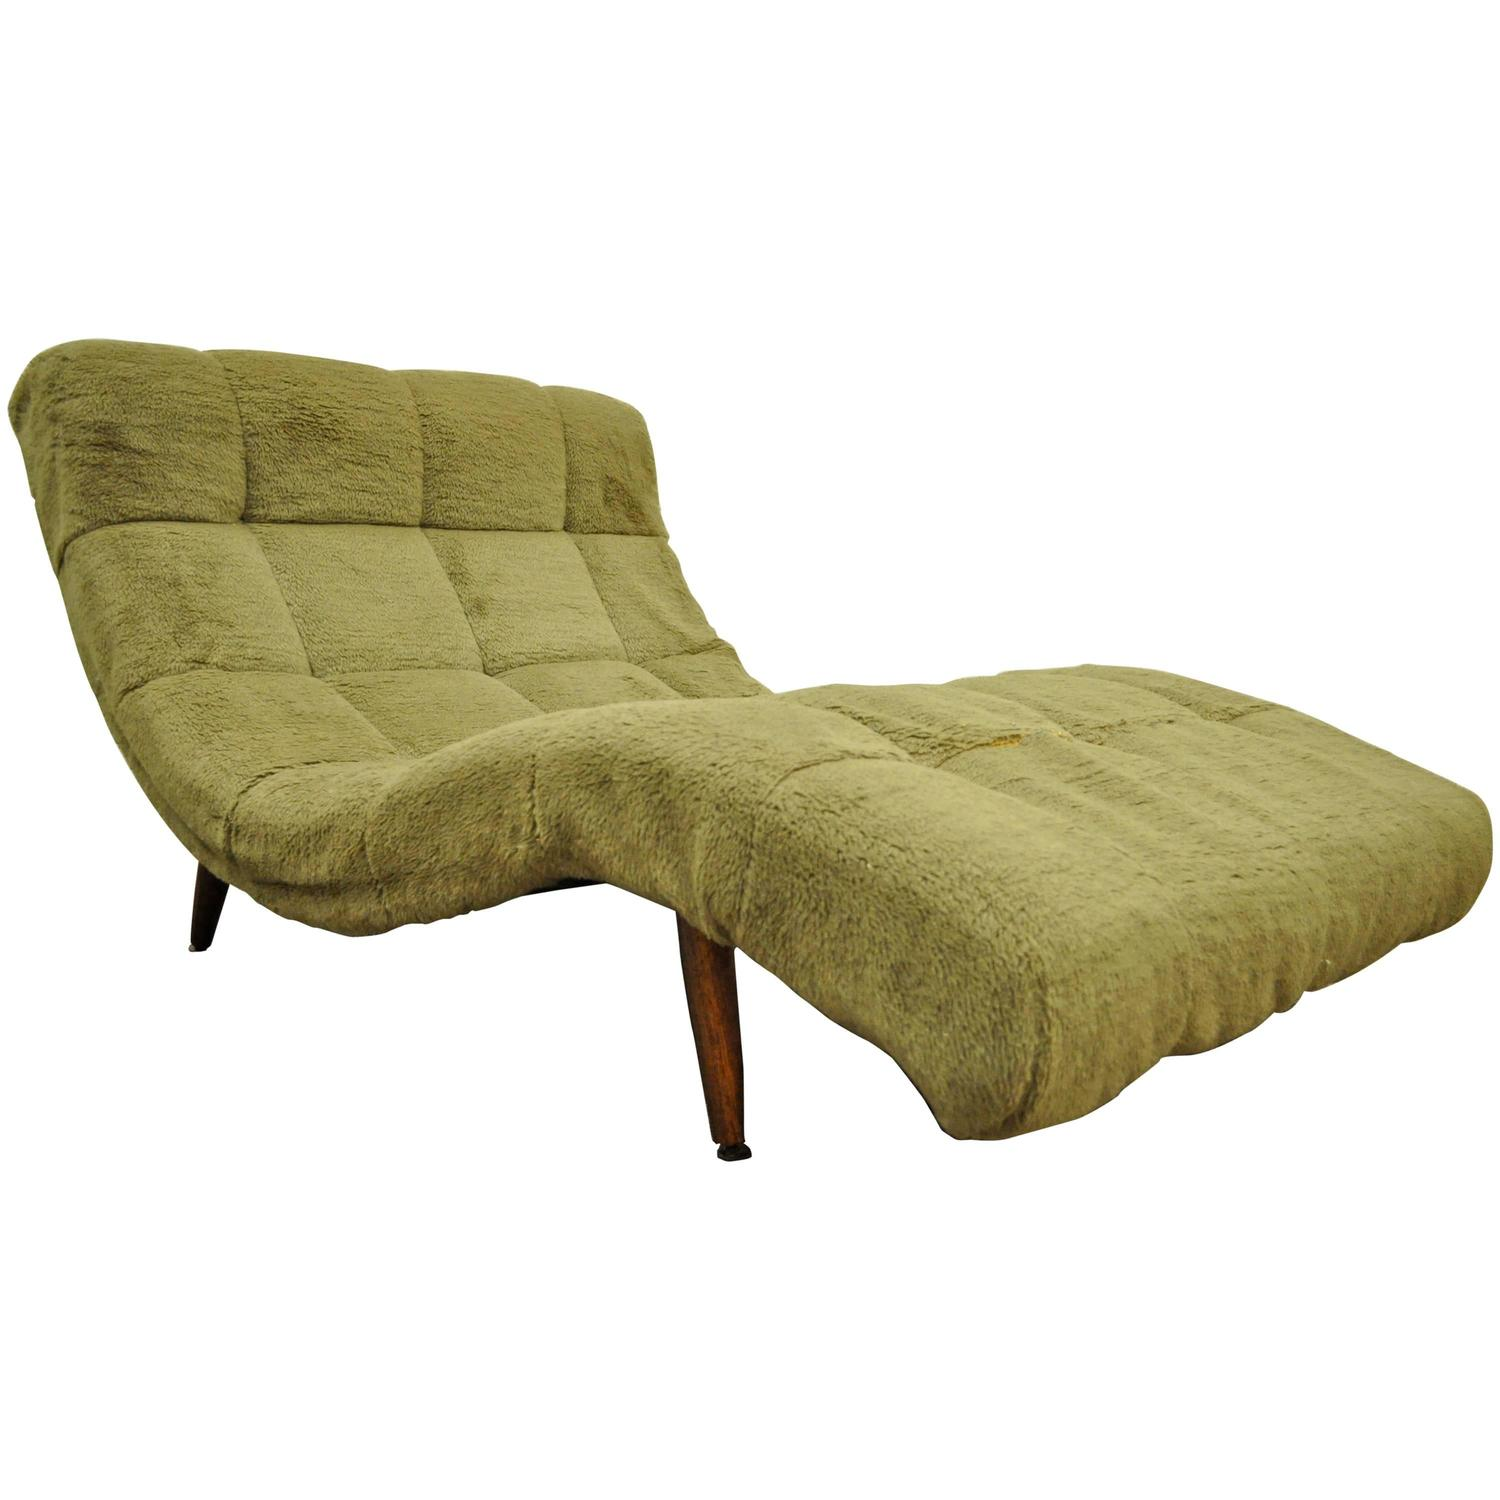 MidCentury Modern Double Wide Wave Chaise Lounge in the style of Adrian Pears